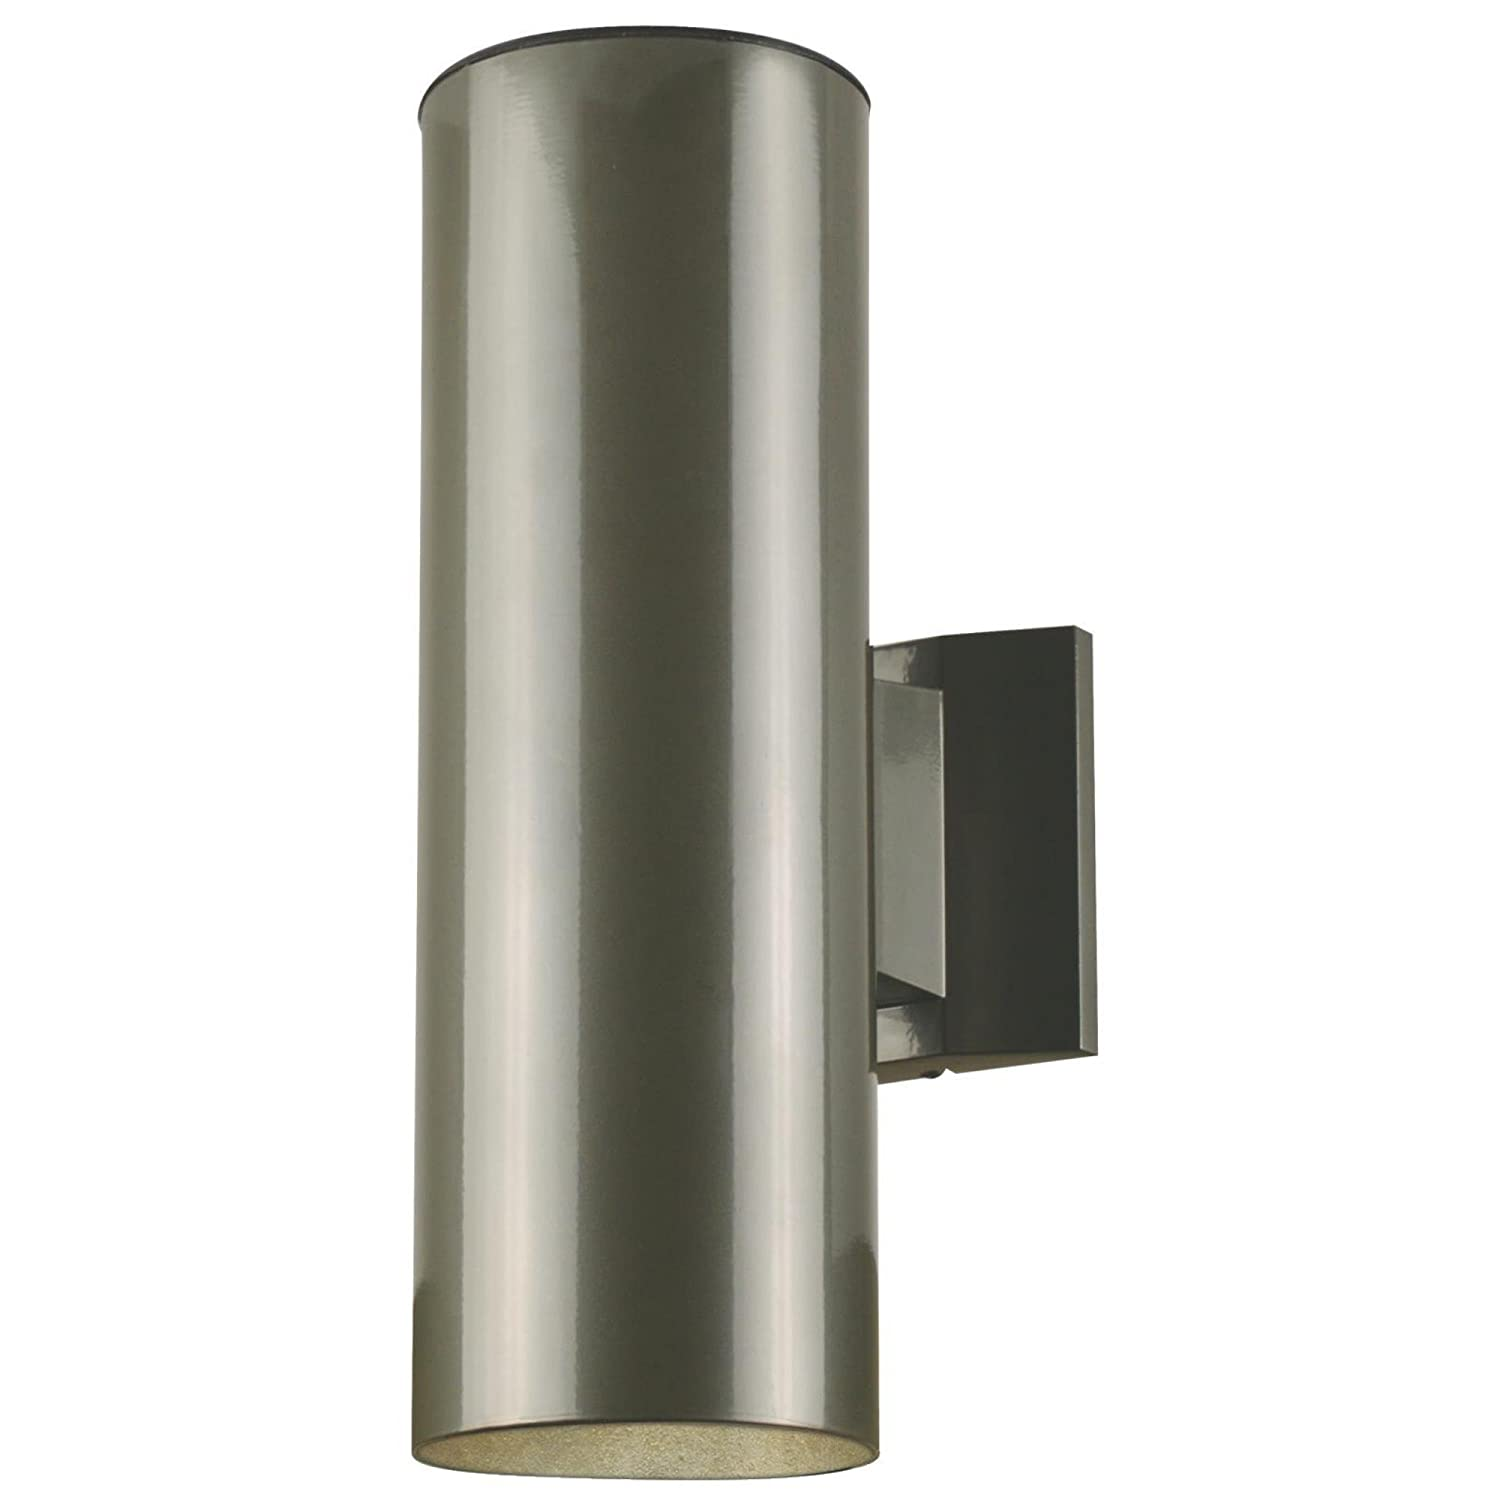 6797500 Two-Light Outdoor Wall Fixture, Polished Graphite Finish on Steel Cylinder